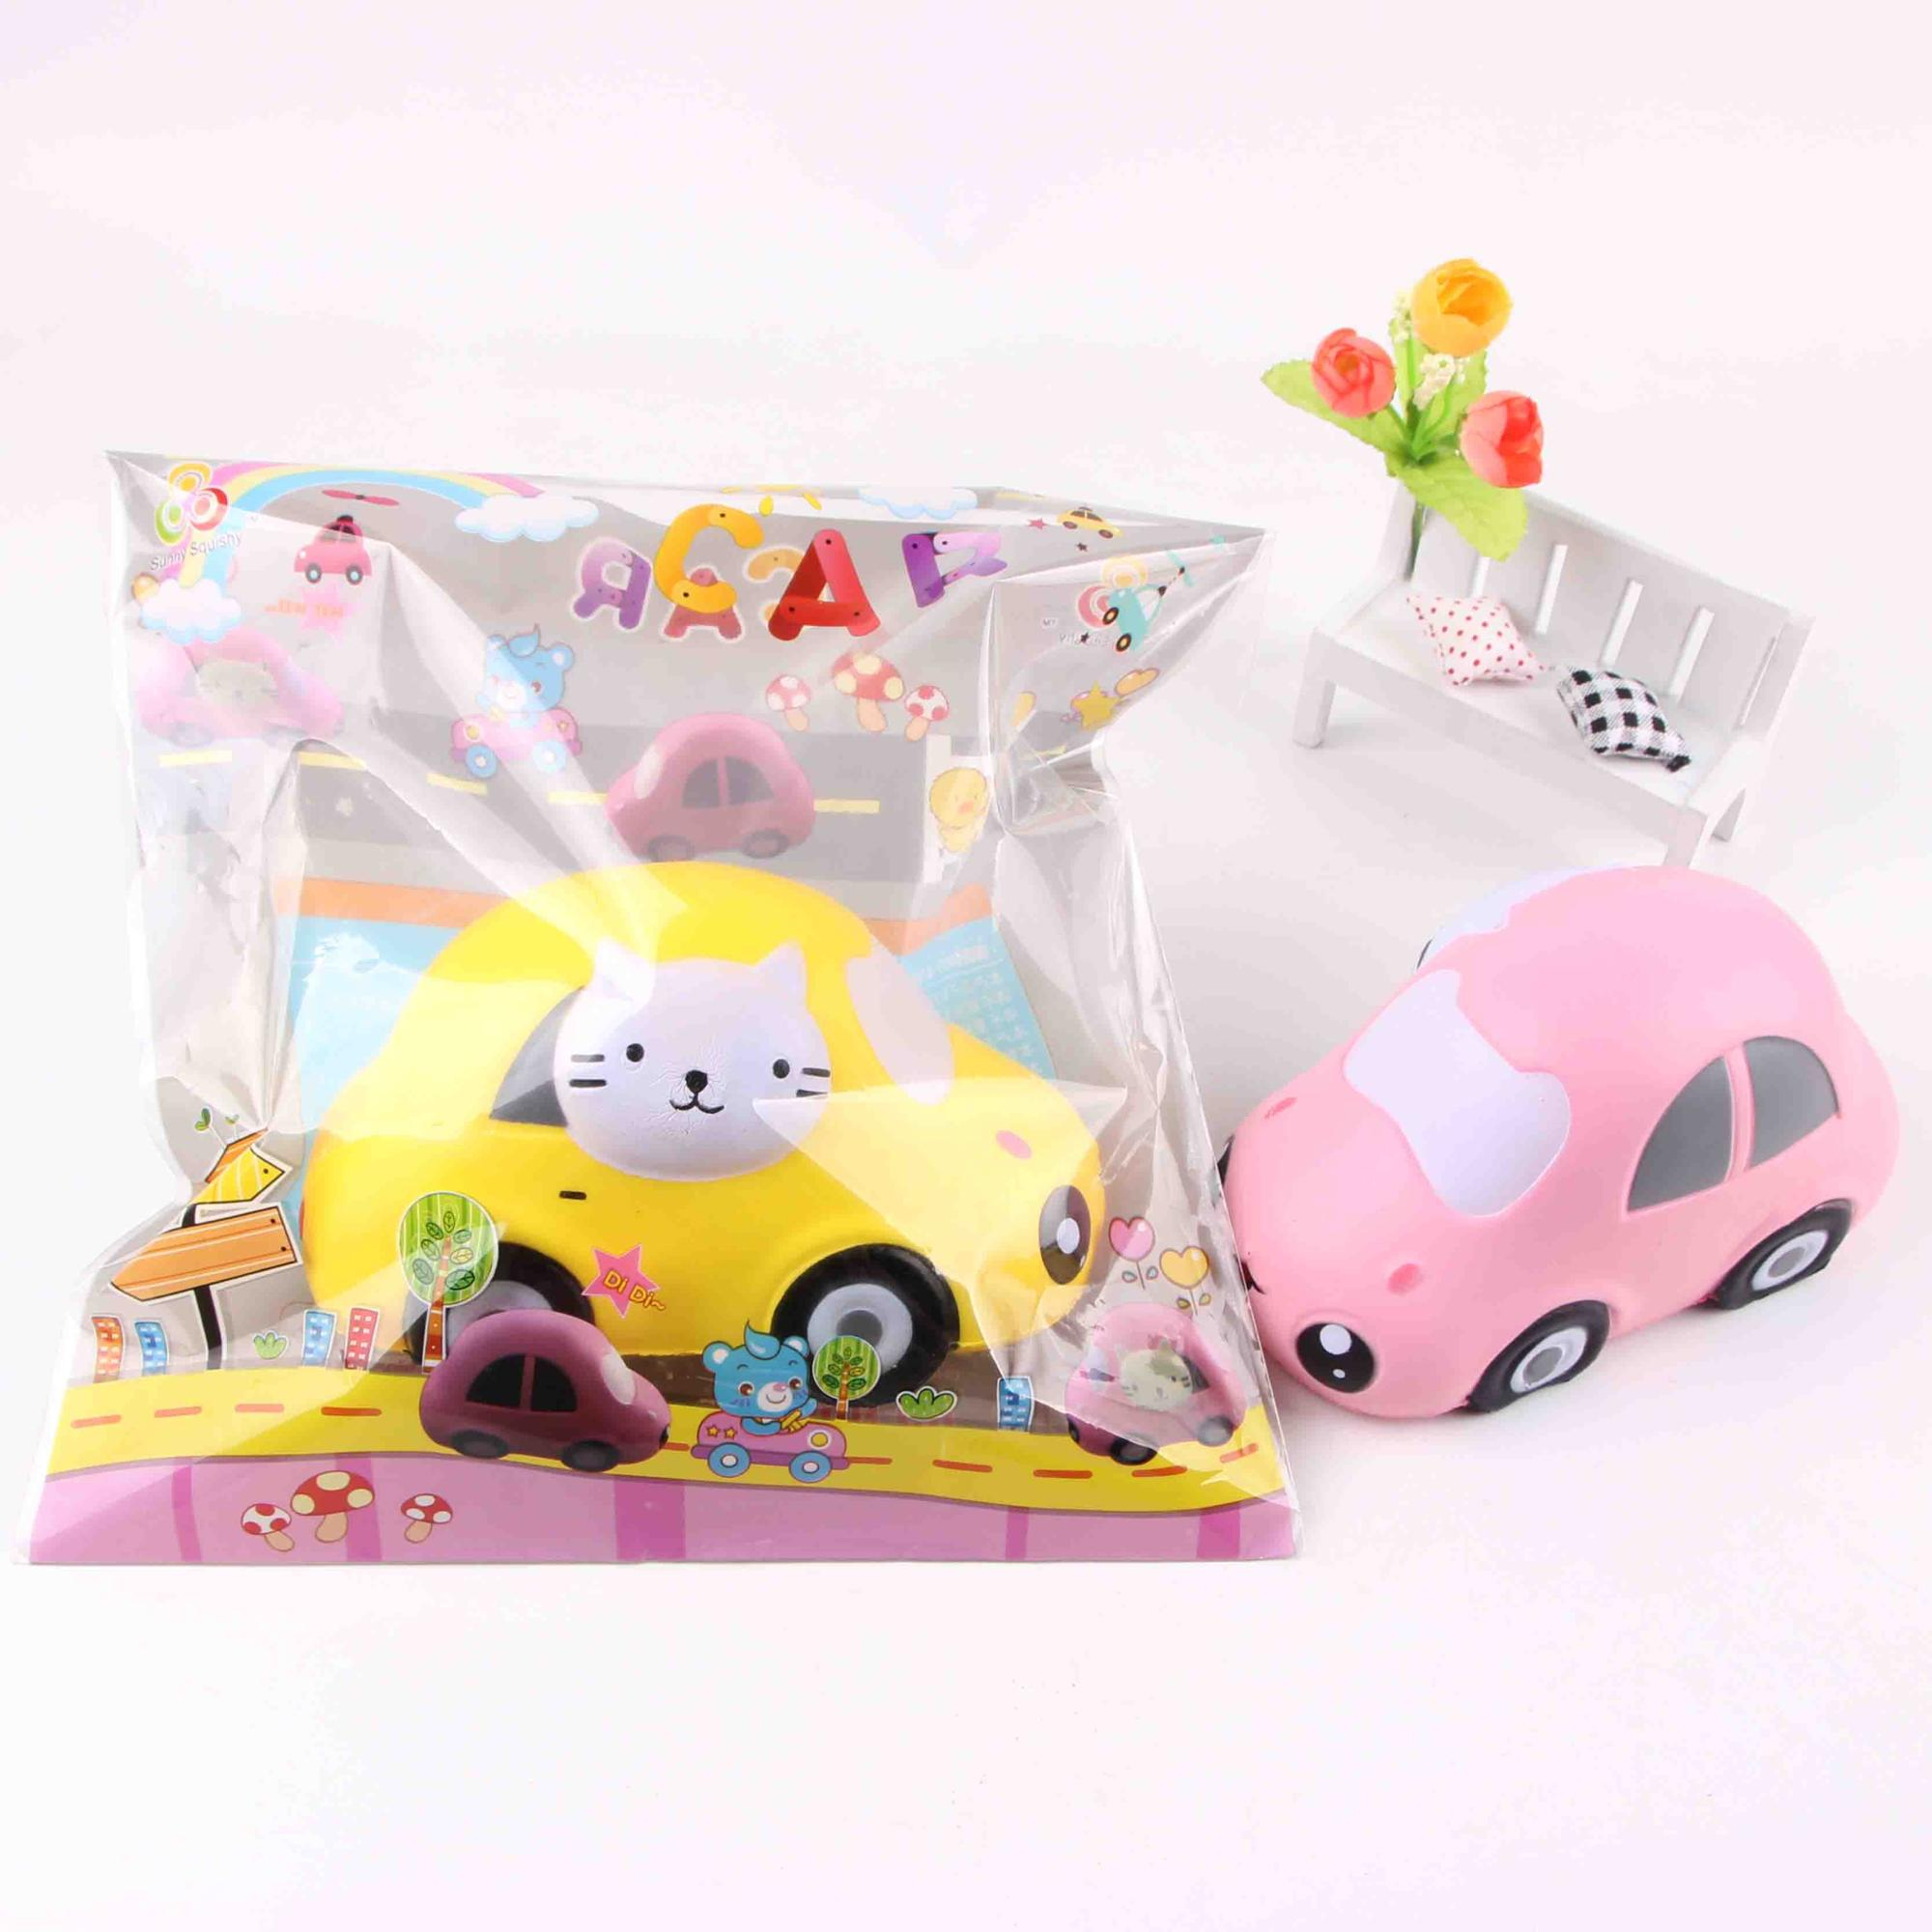 sunny squishy PU soft slow rising small car for kids